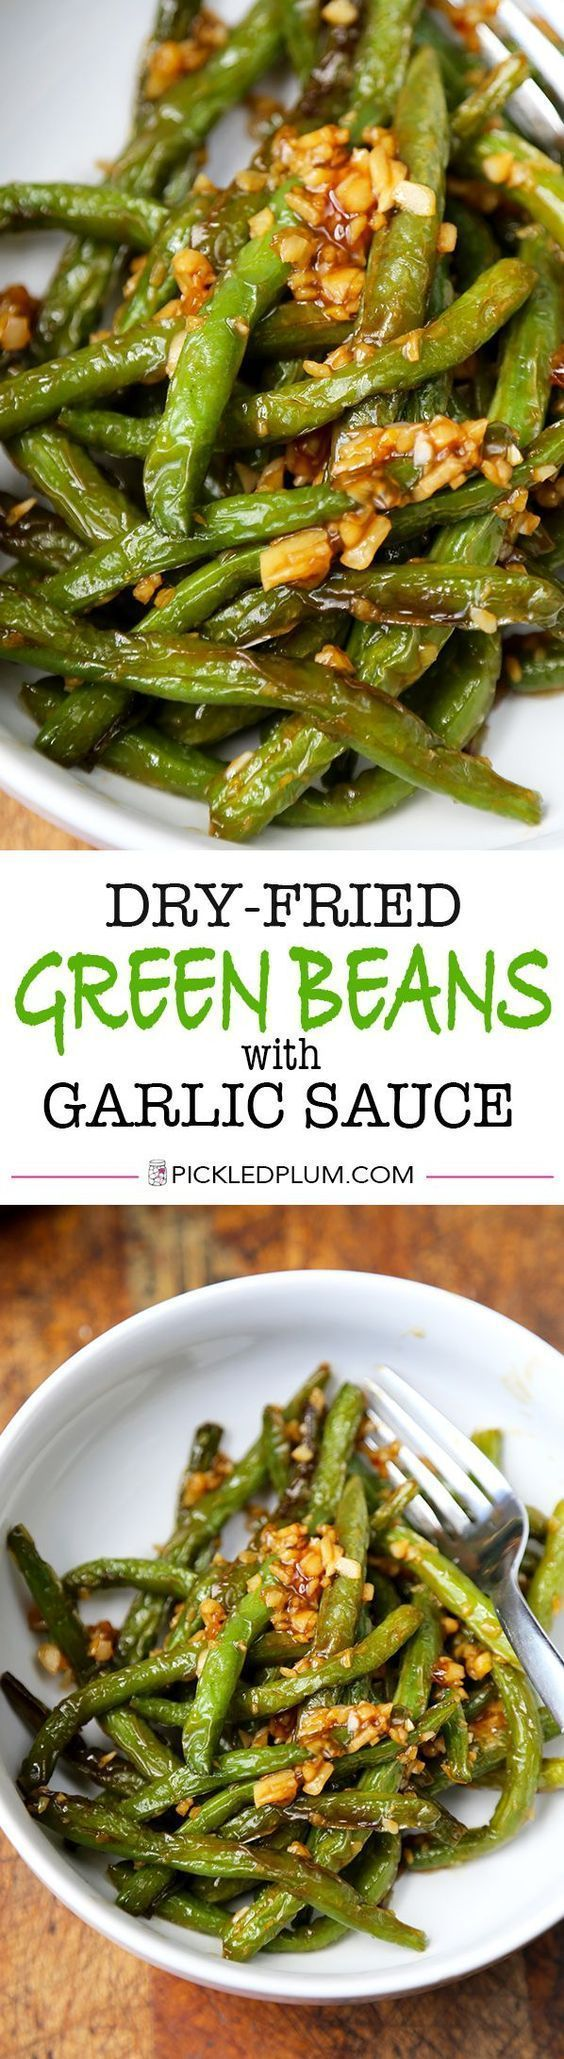 The easiest and tastiest Dry-Fried Green Beans with Garlic Sauce Recipe! Vegetarian and Vegan. Only 10 minutes to make from start to finish! | Pickled Plum